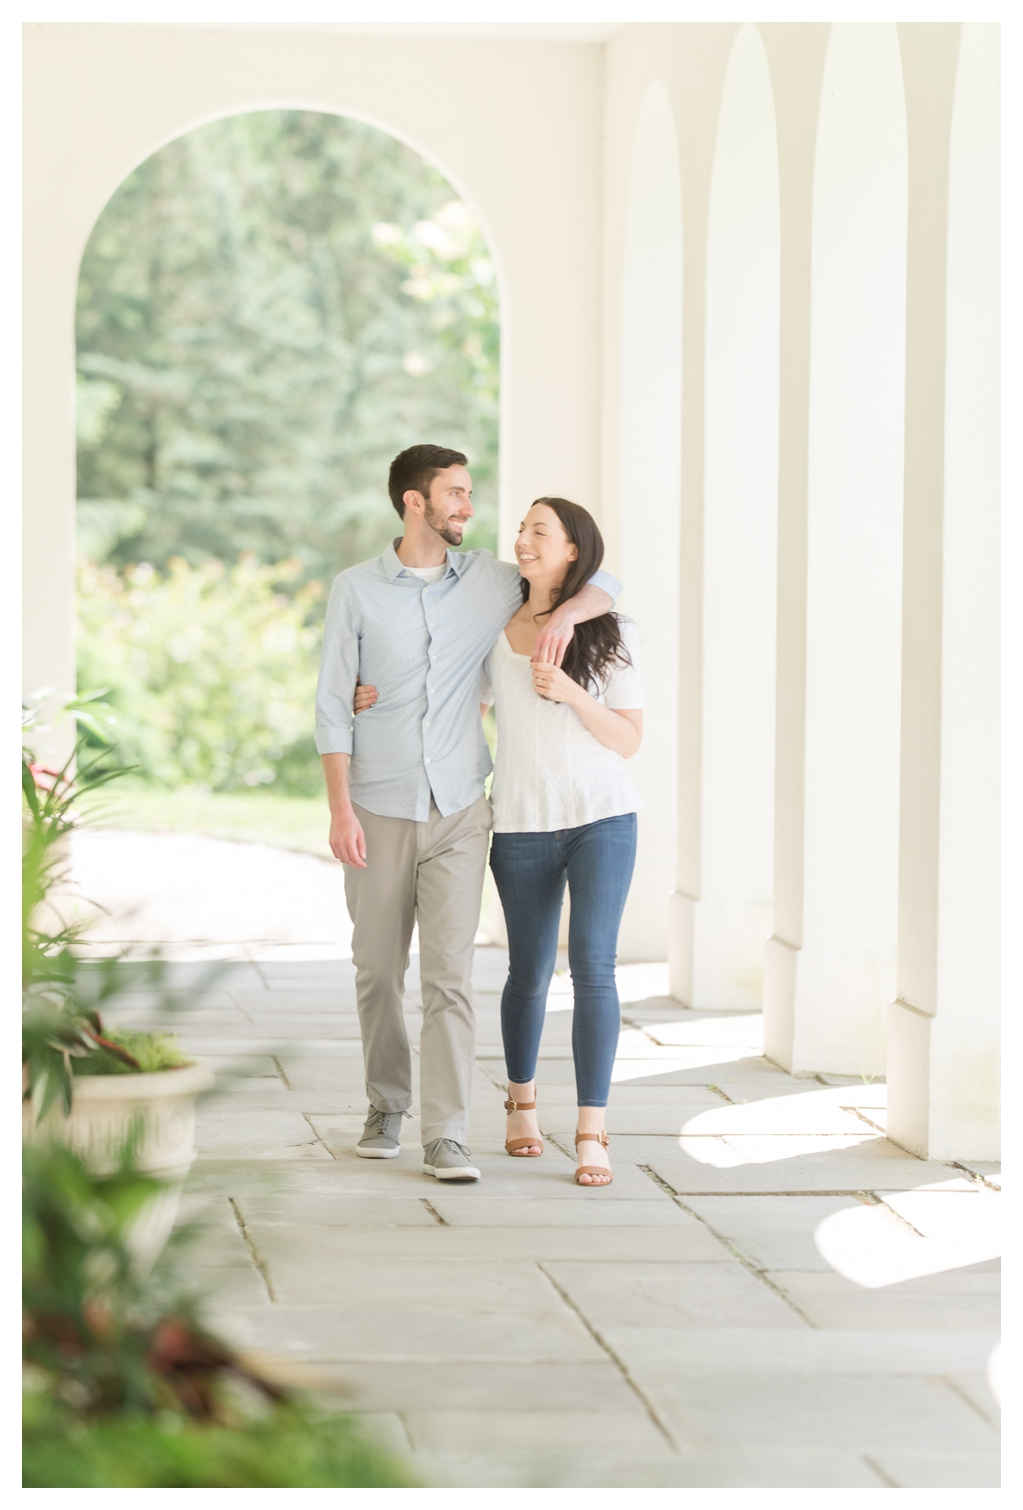 Lily House and Gardens Engagement Session_0826.jpg